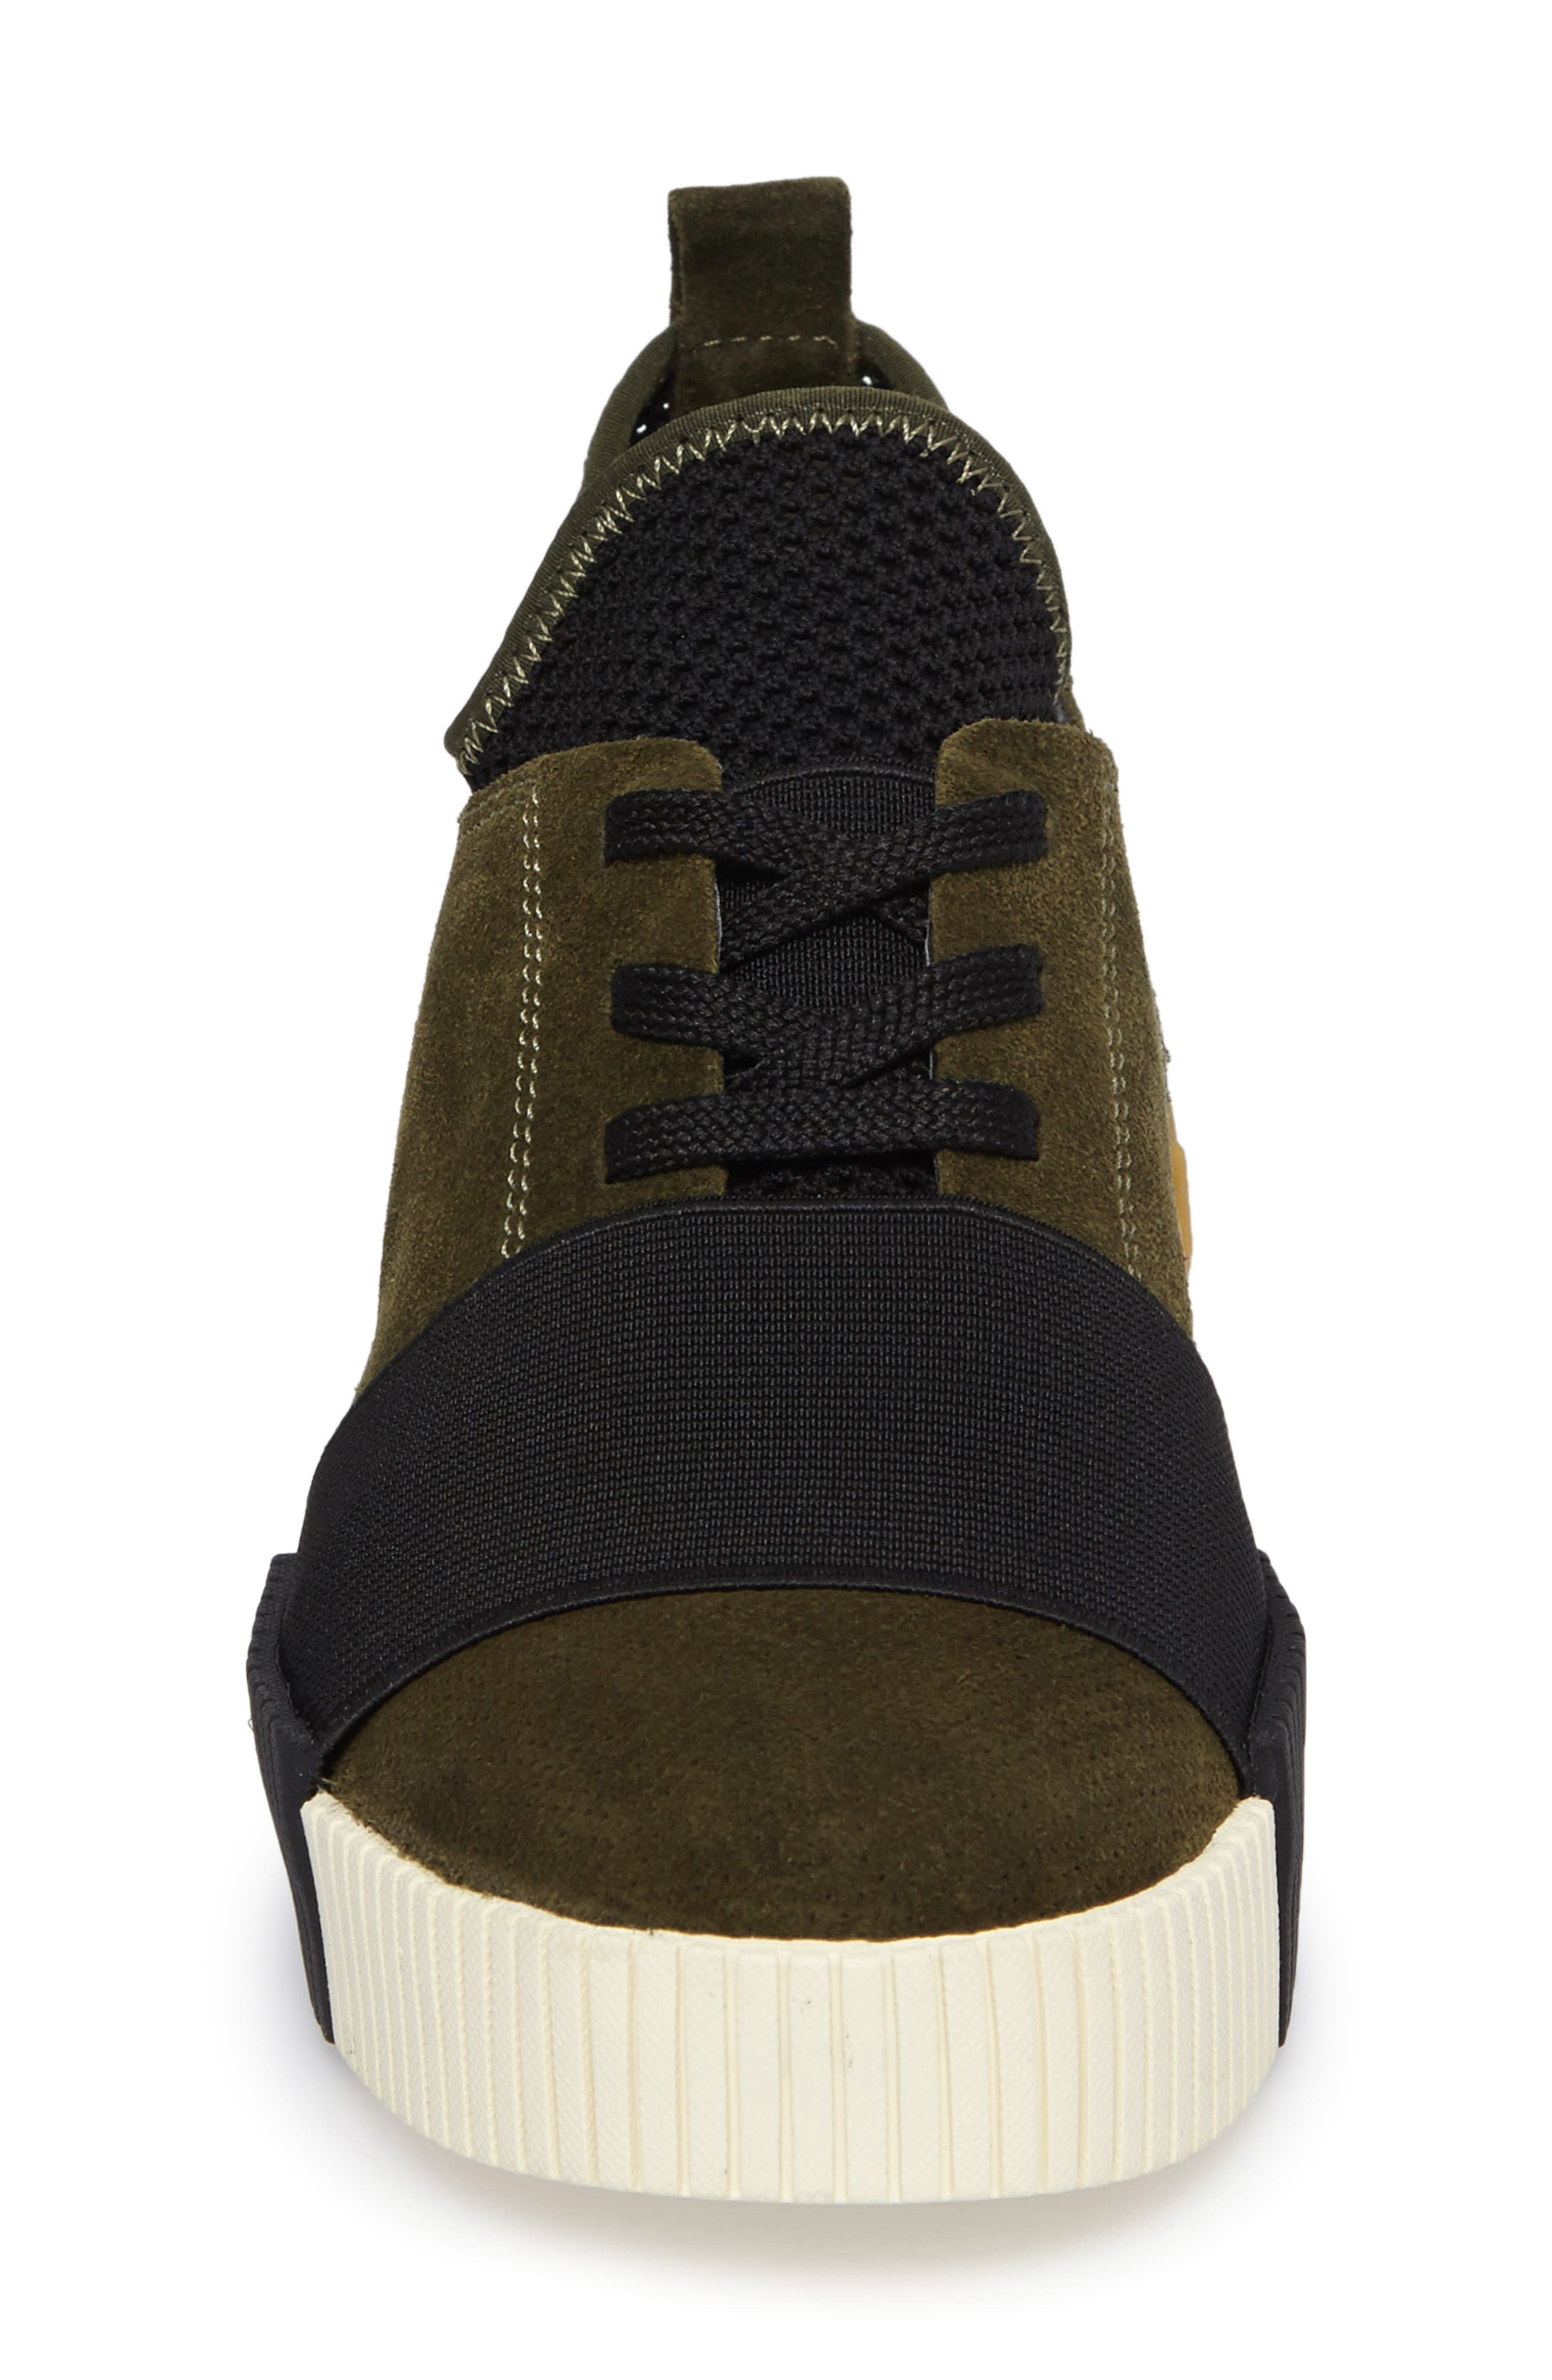 Ryley Platform Sneaker,                             Alternate thumbnail 4, color,                             Green Leather